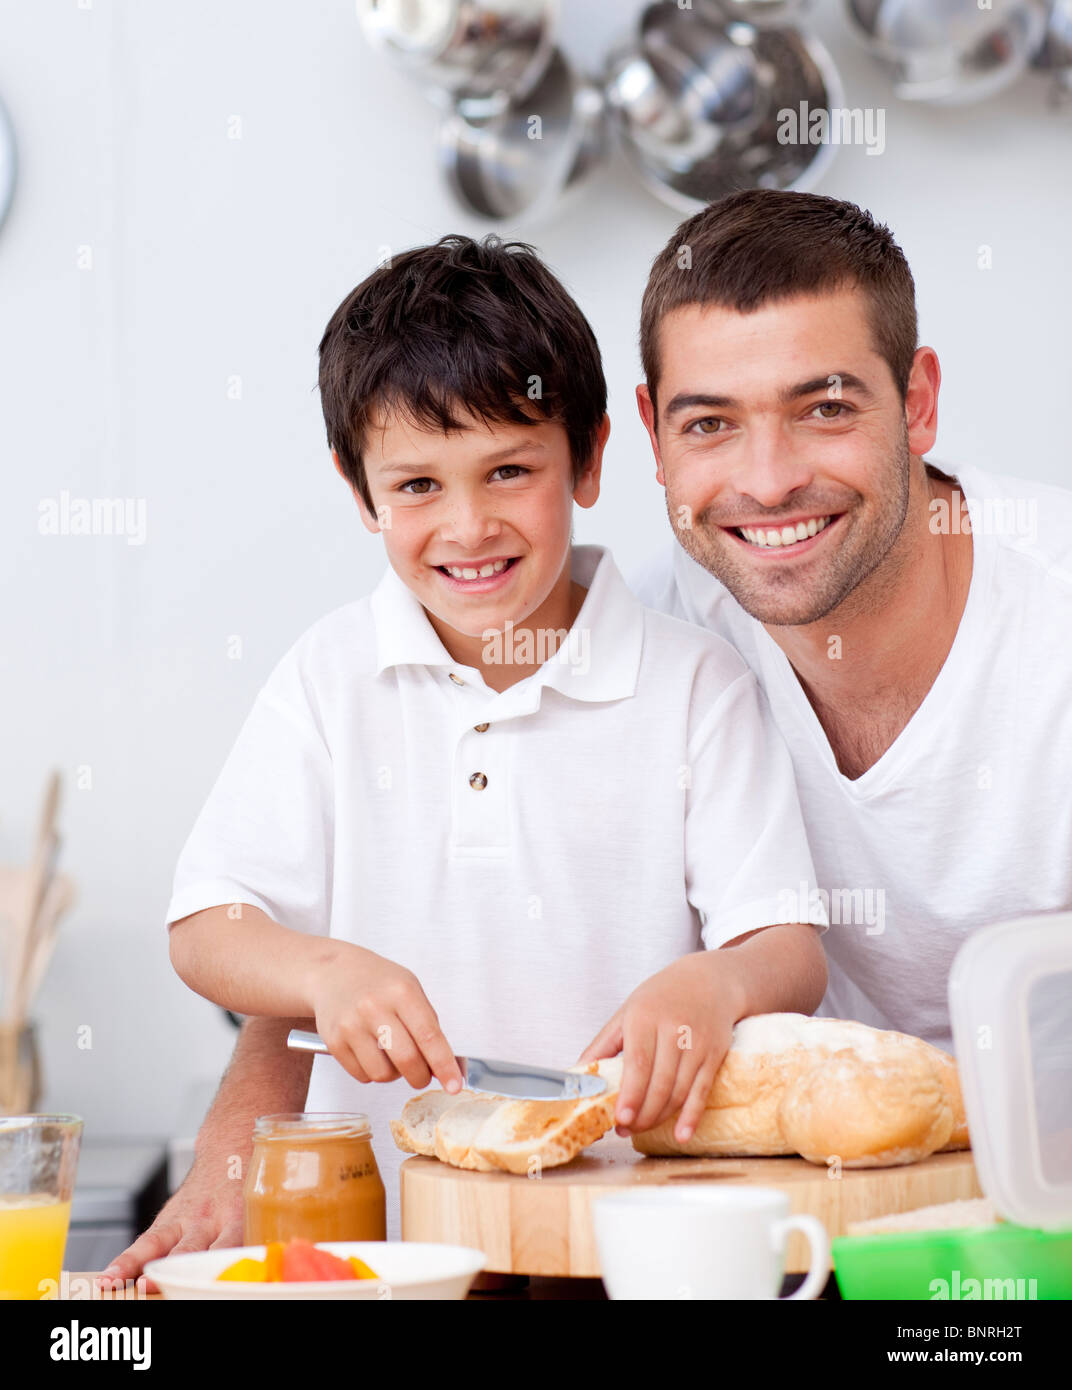 Smiling Father And Son Preparing A Toast Stock Photo